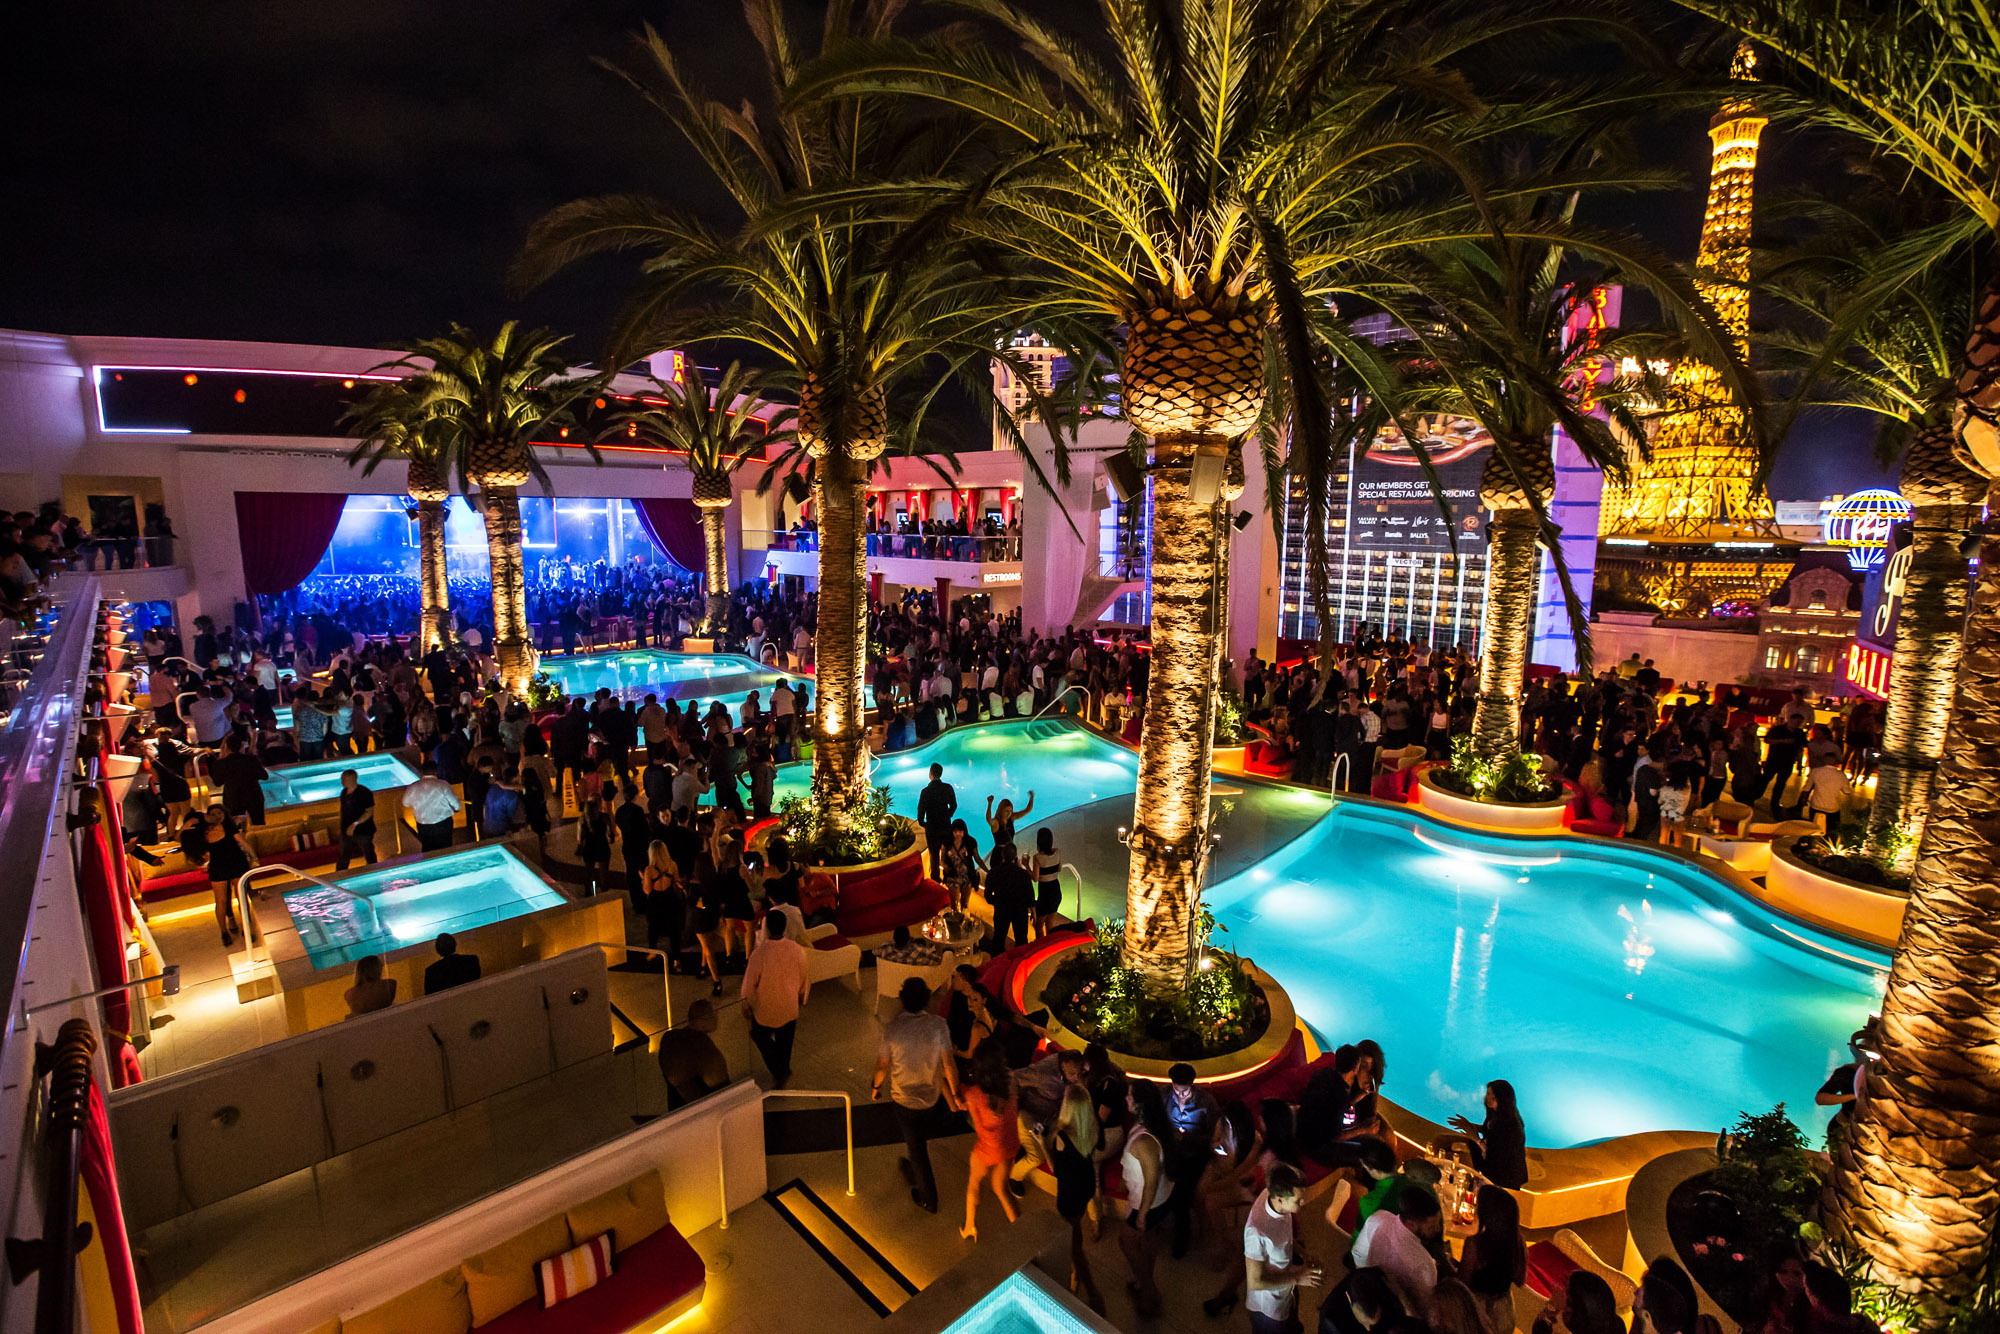 DJ Esco - Drais Nightclub - Guest List VIP Tables